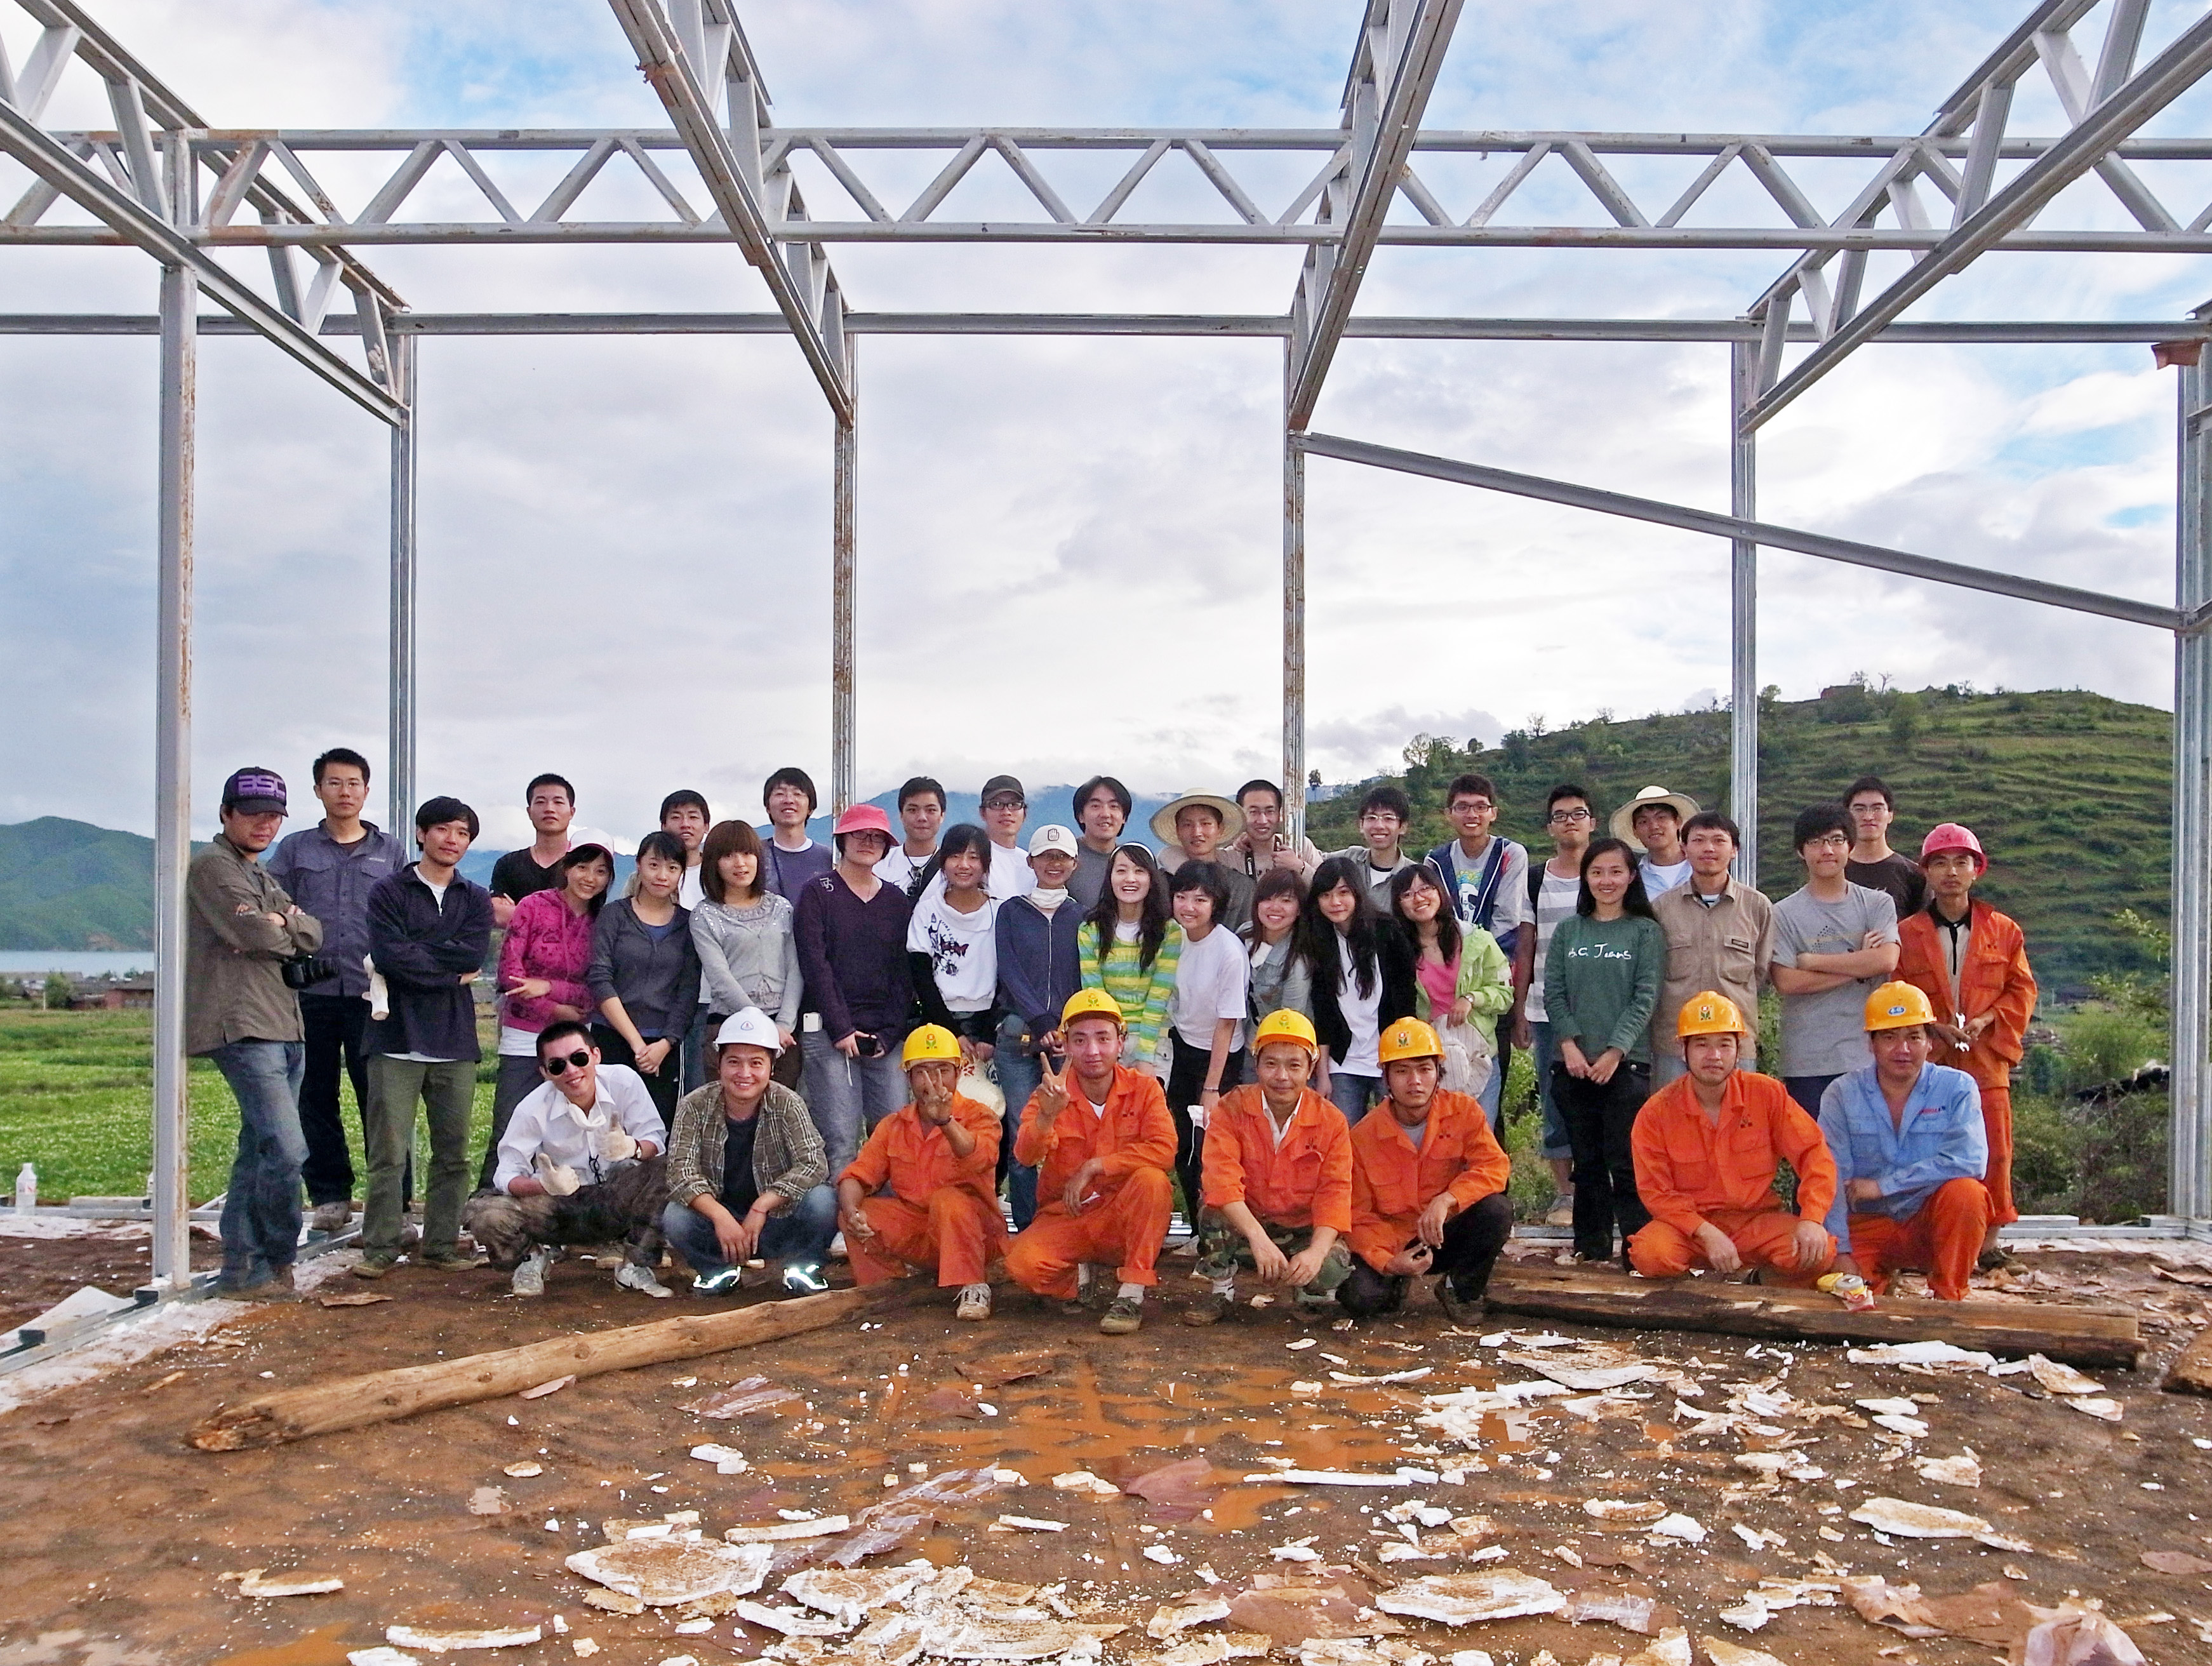 Architects and university students took part in the construction of New Bud Study Hall